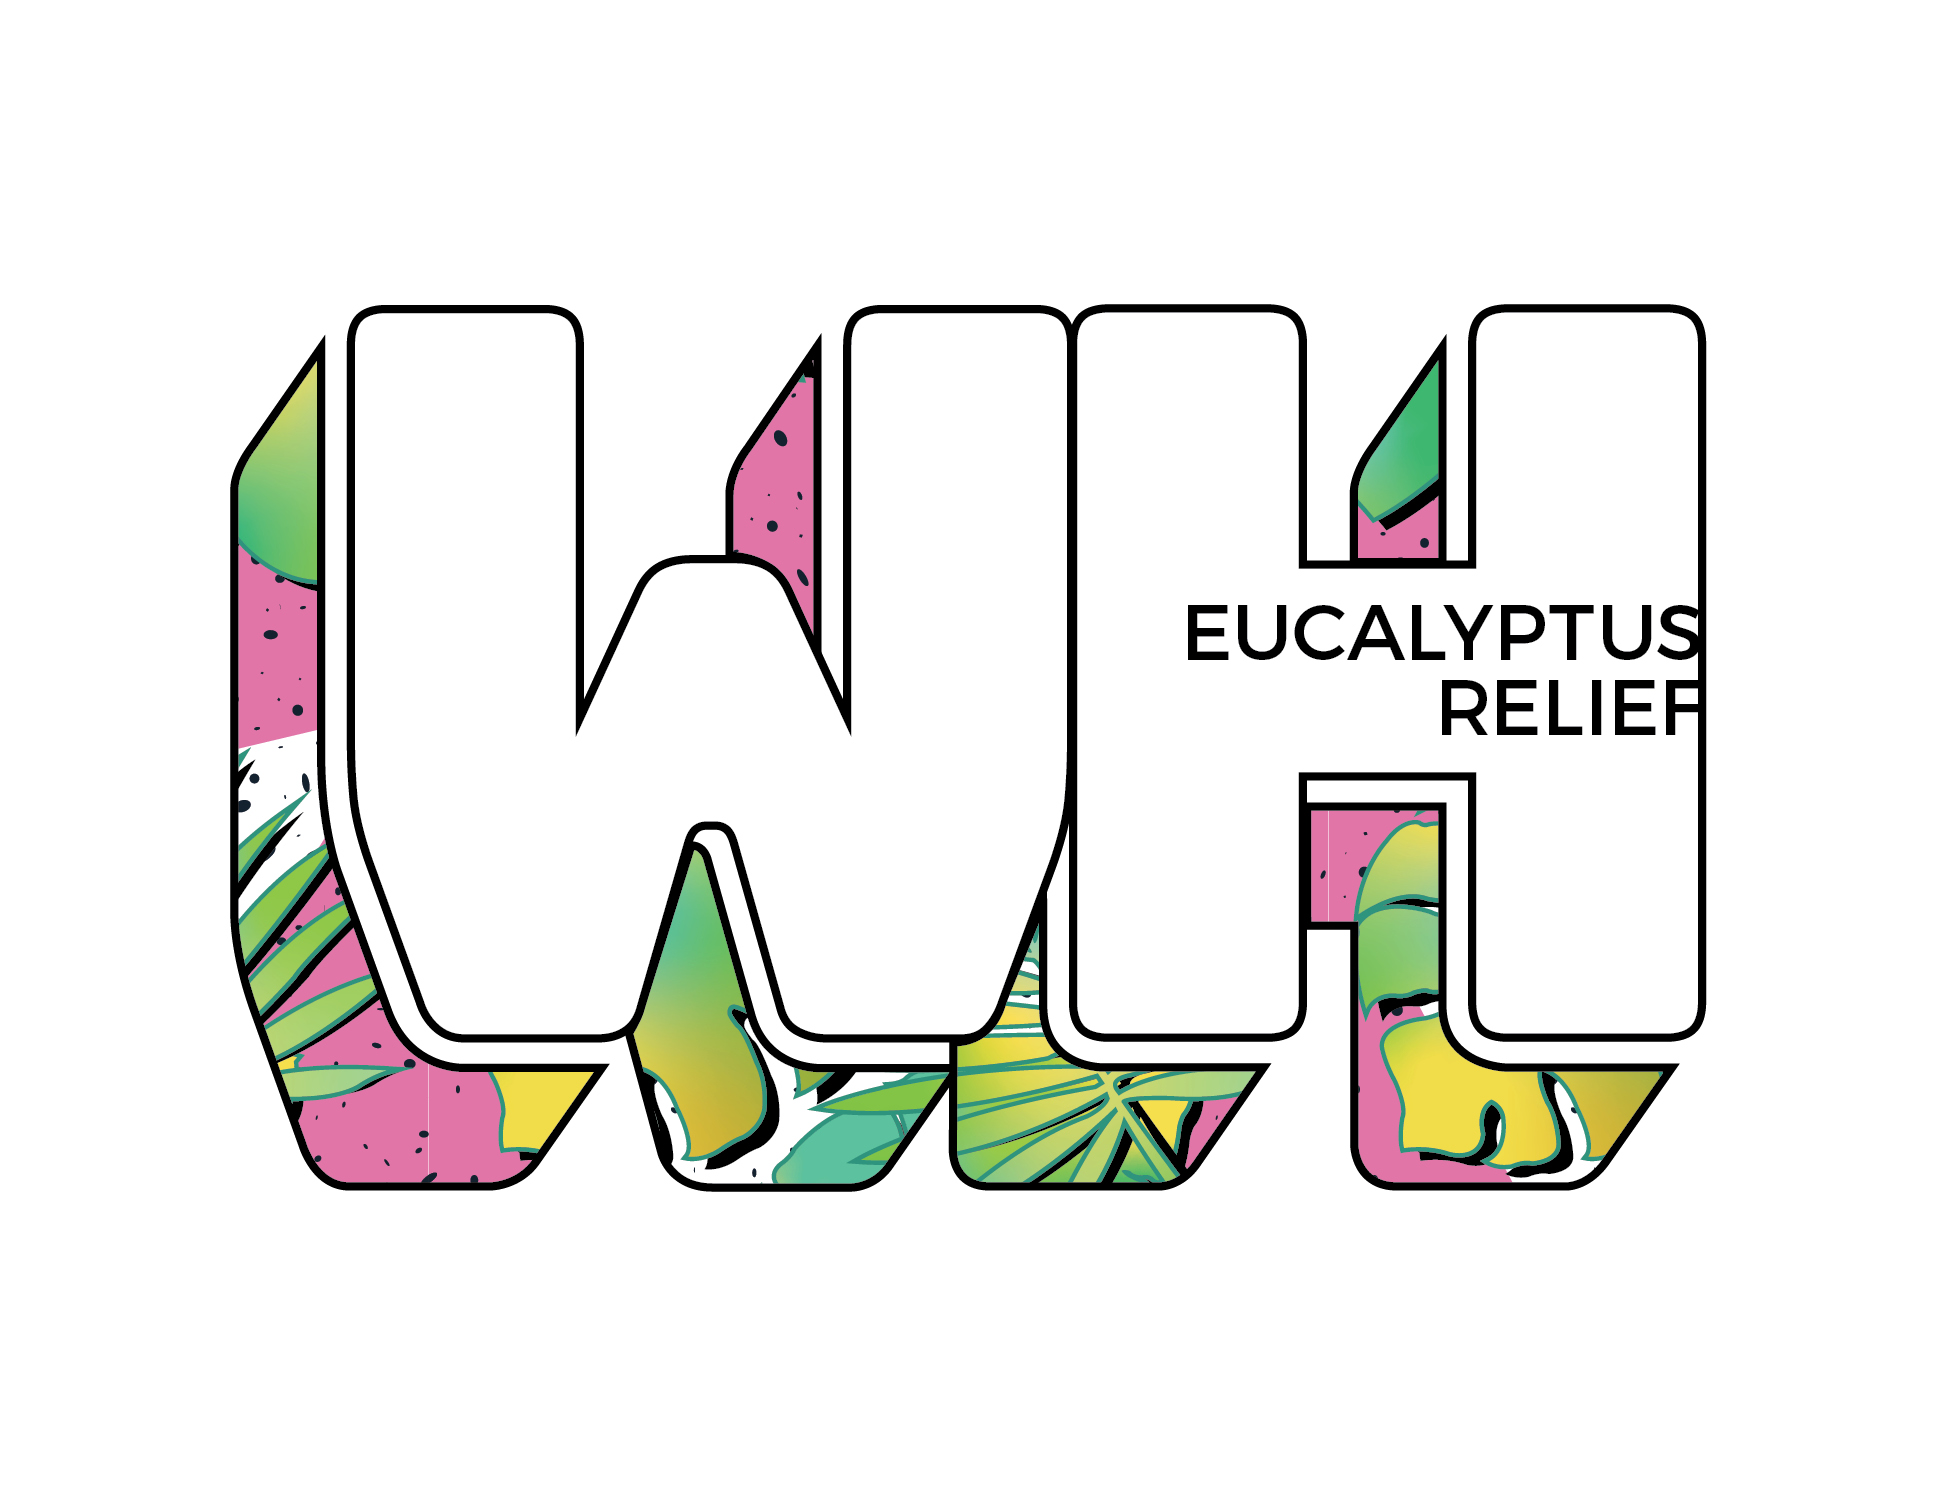 logo_eucalyptus_website.jpg